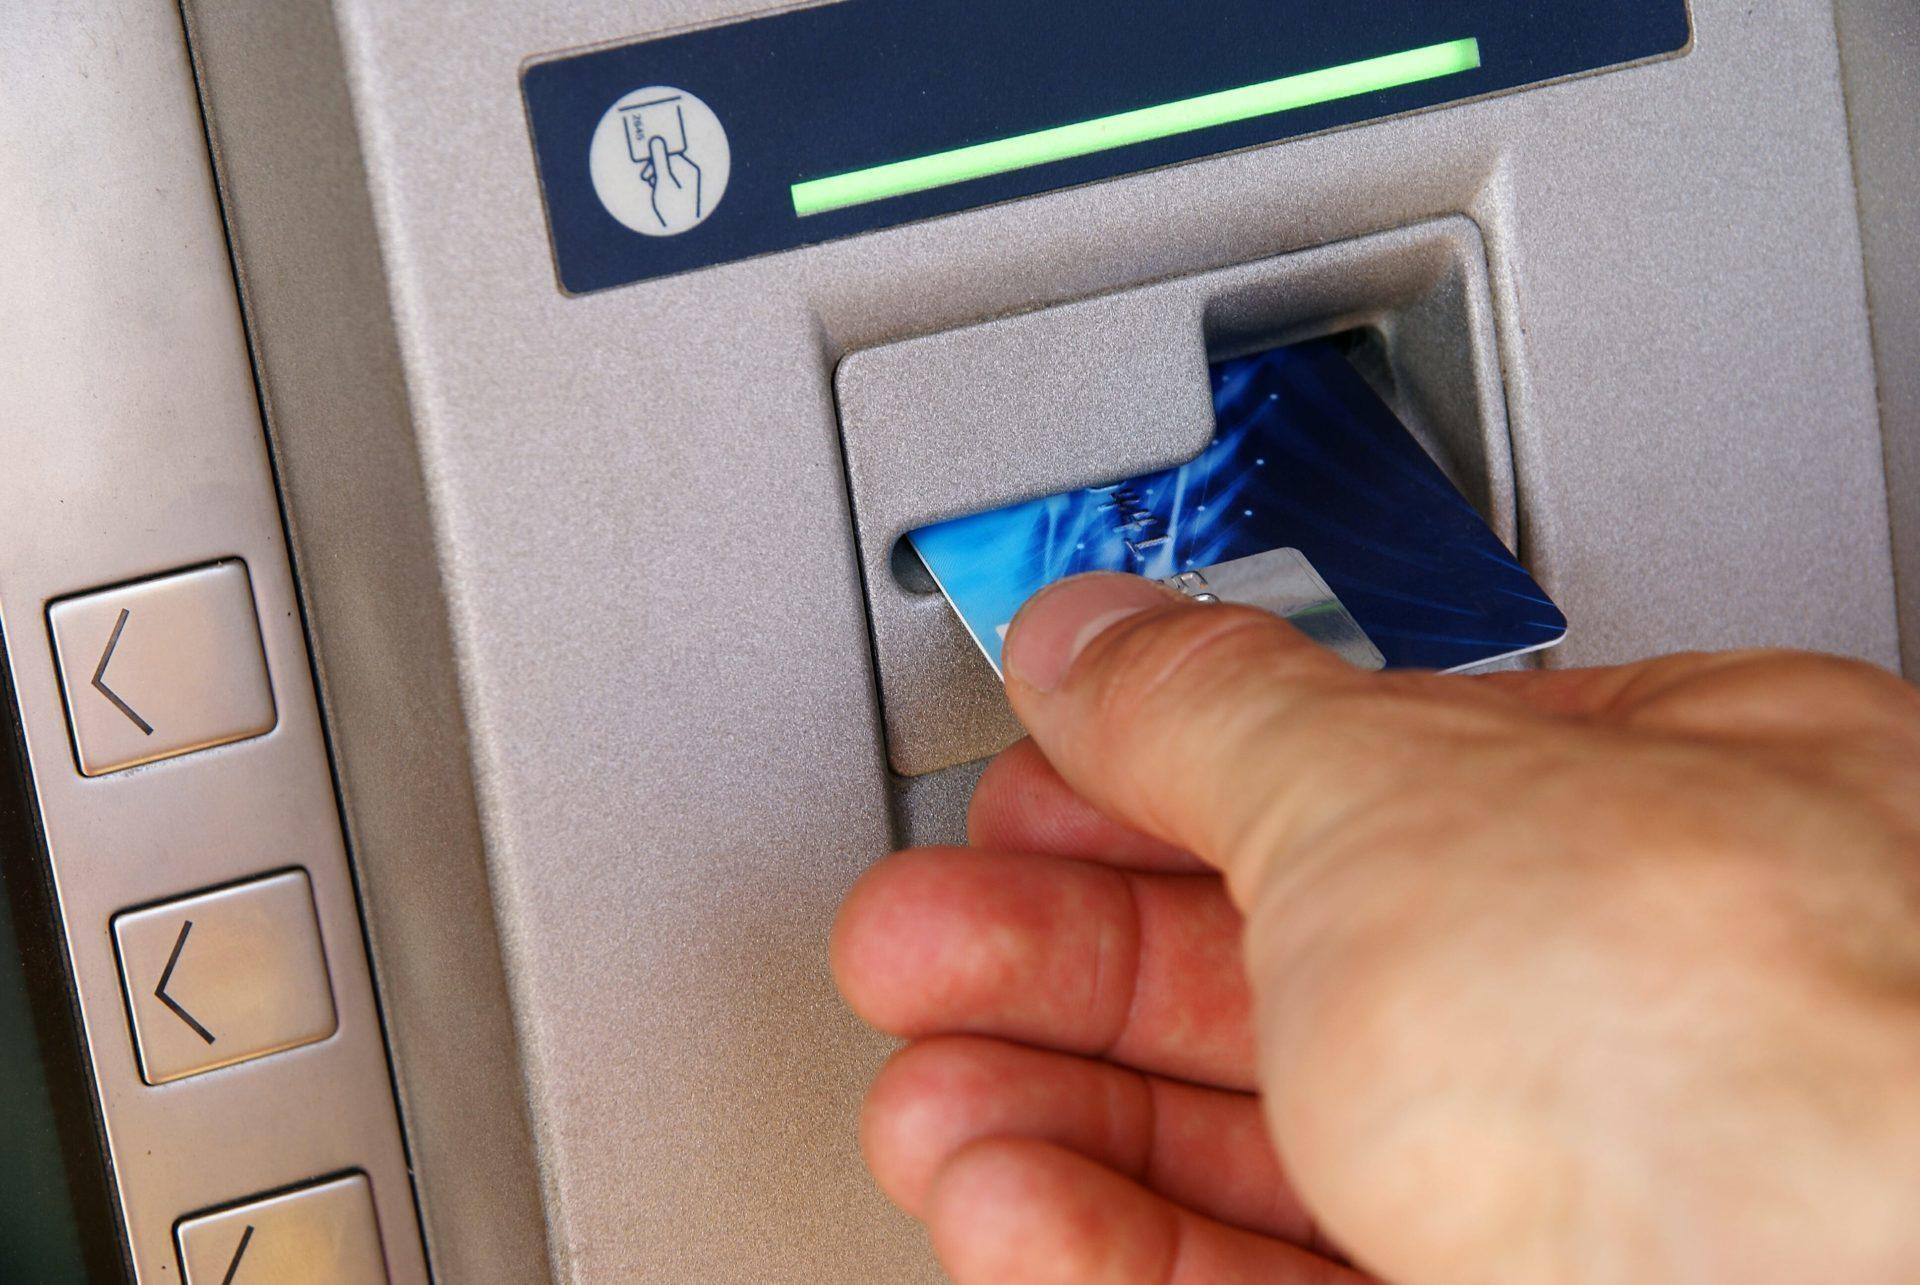 ATM Skimming Gets Slick and Your Money Is At Stake